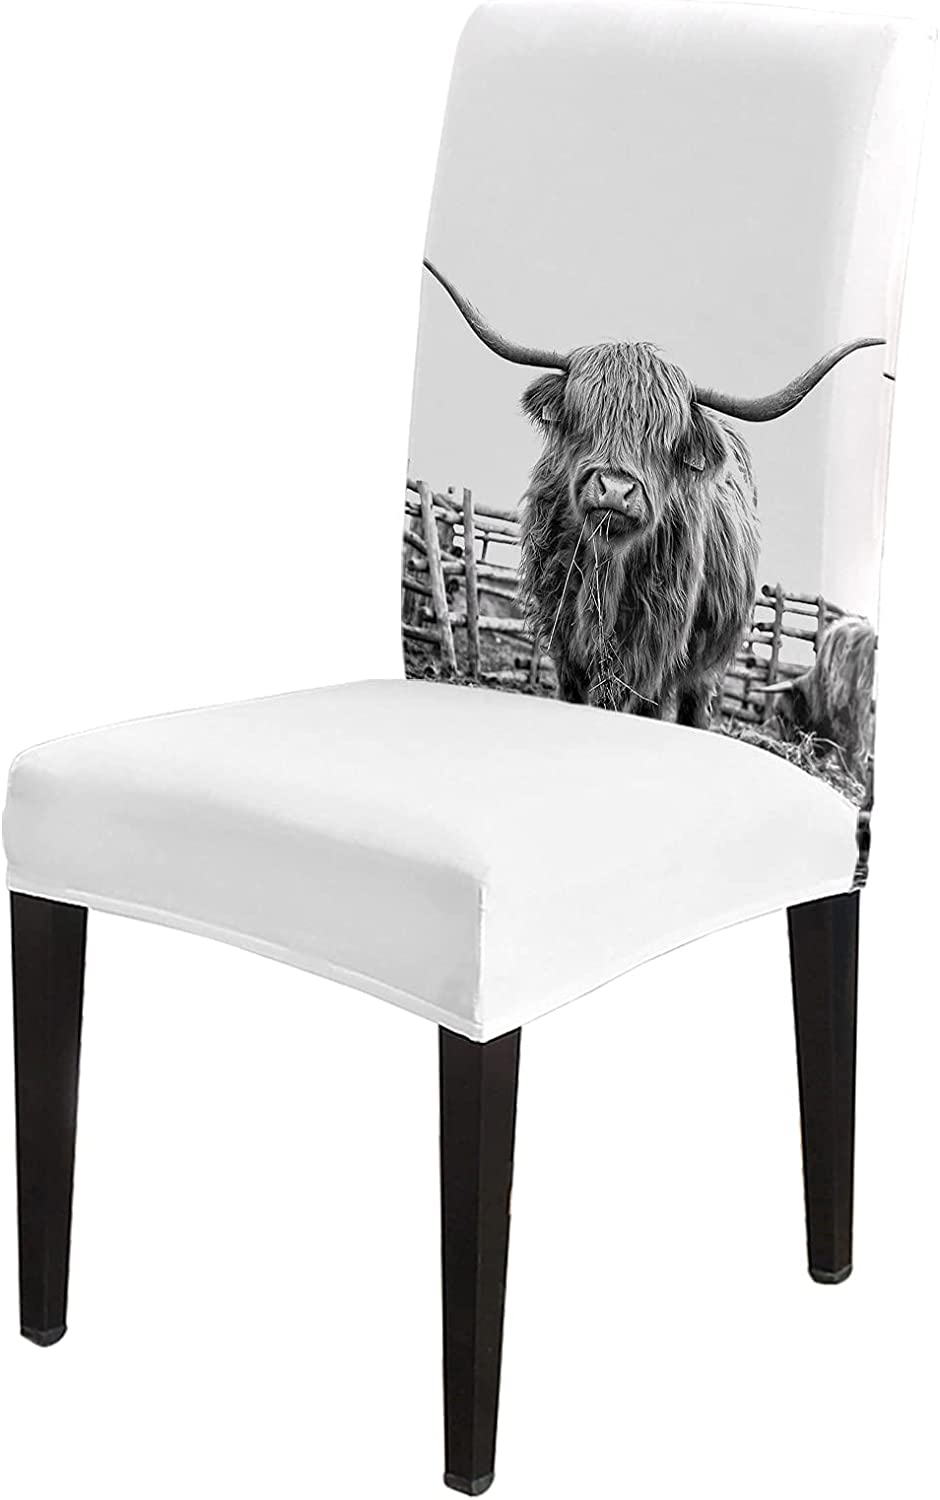 Alpine Yak Chair Slip Covers Dining 5 ☆ San Francisco Mall popular Stretchable Protector